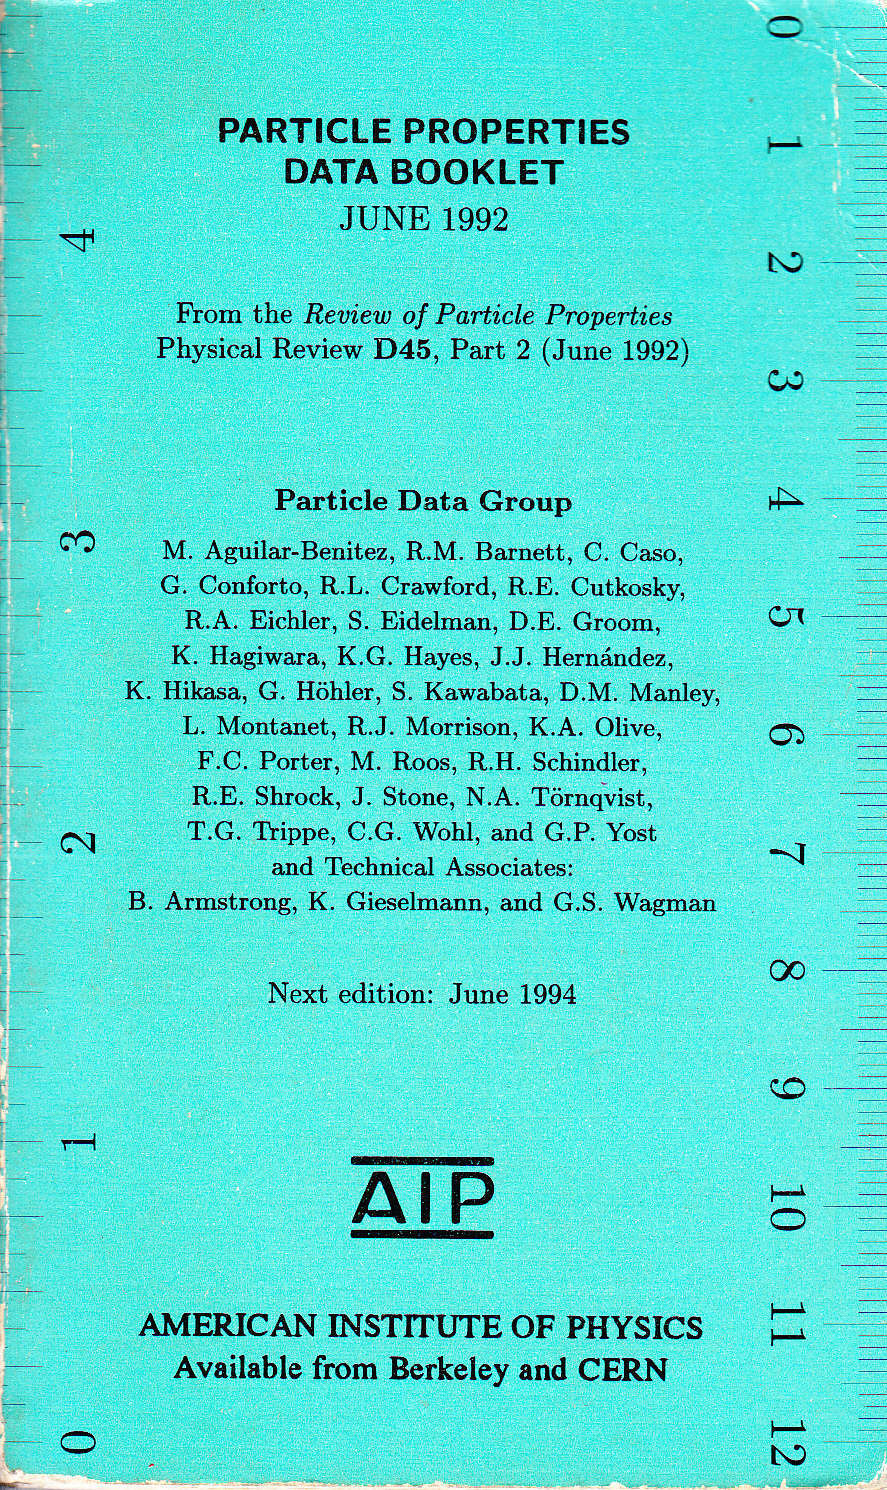 Particle Properties Data Booklet